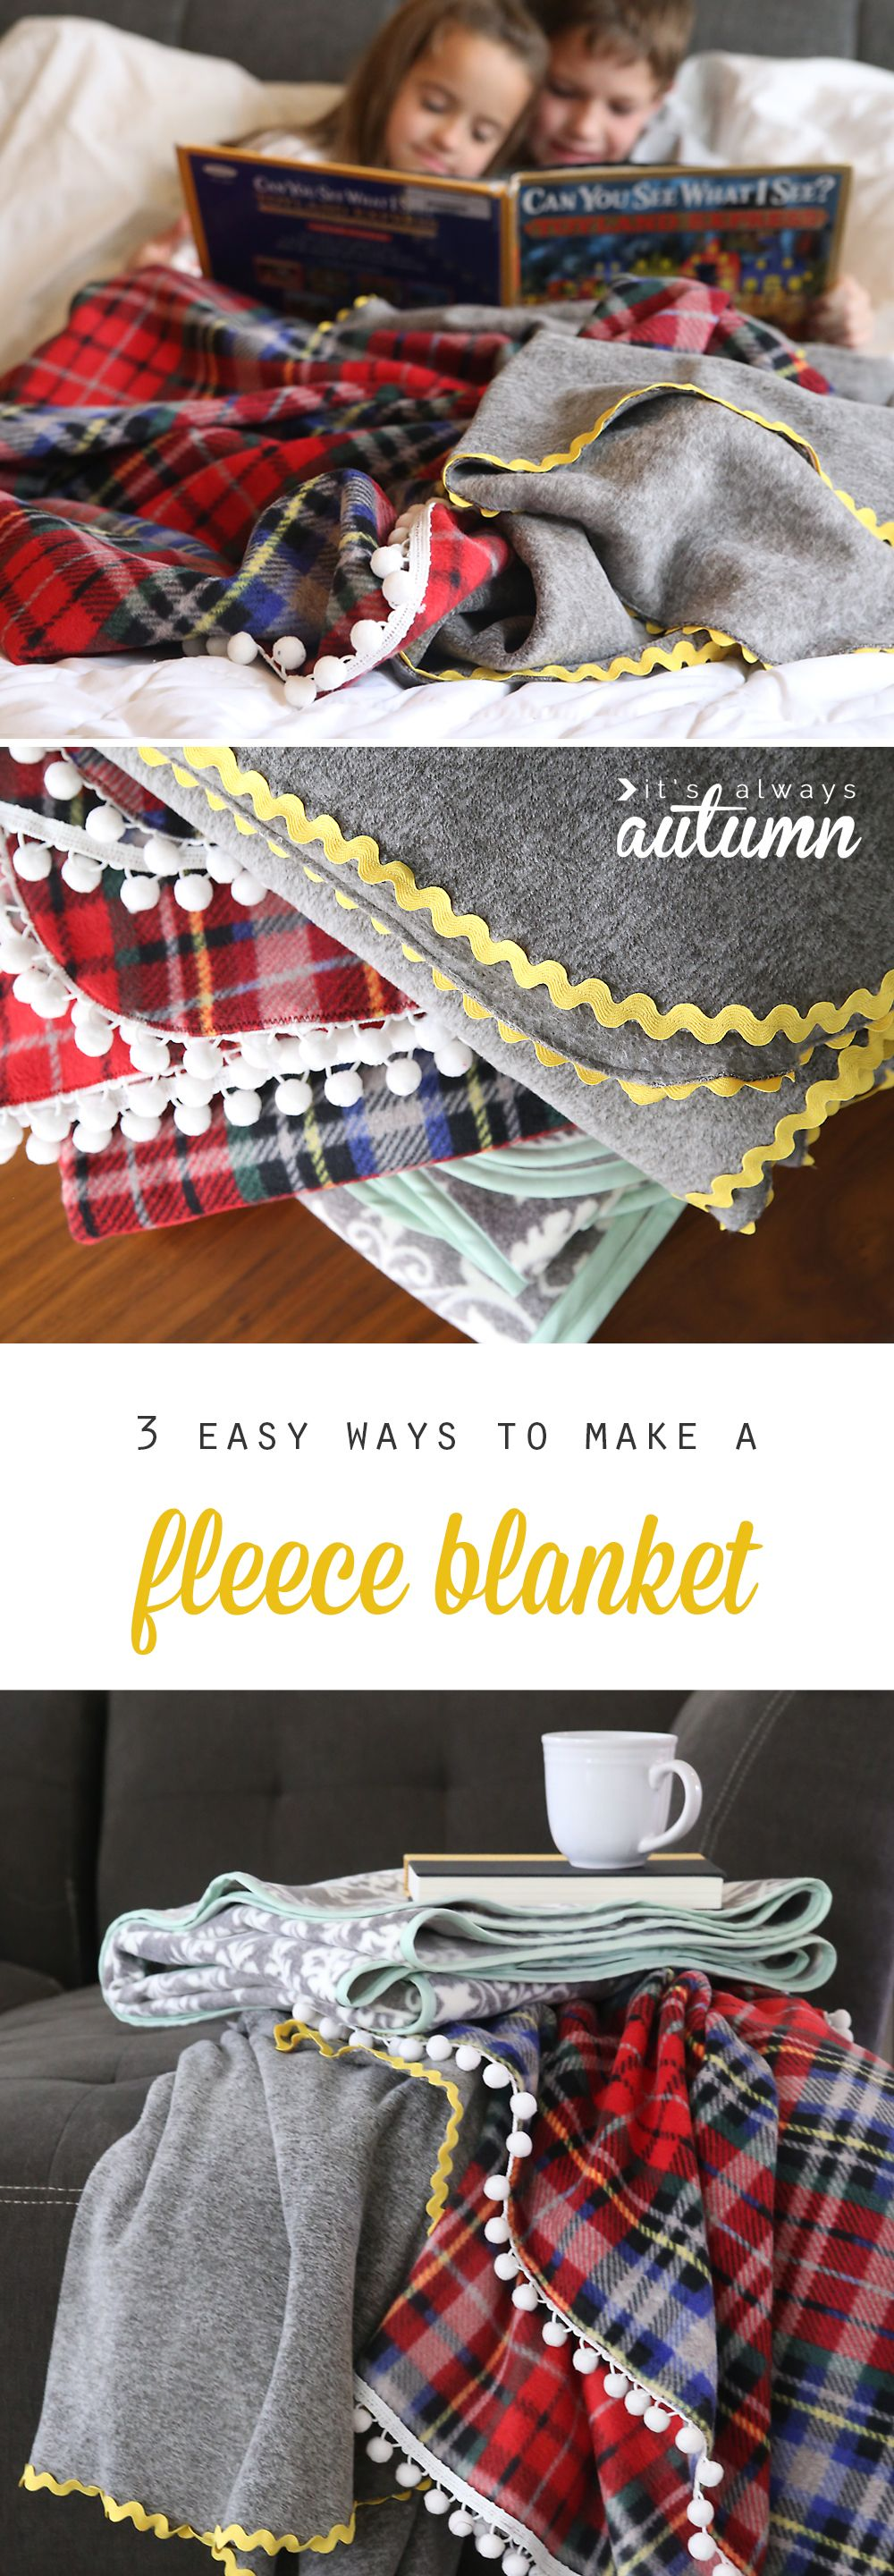 How To Make Gorgeous Diy Fleece Blankets It S So Easy It S Always Autumn Diy Sewing Blanket Diy Sewing Projects